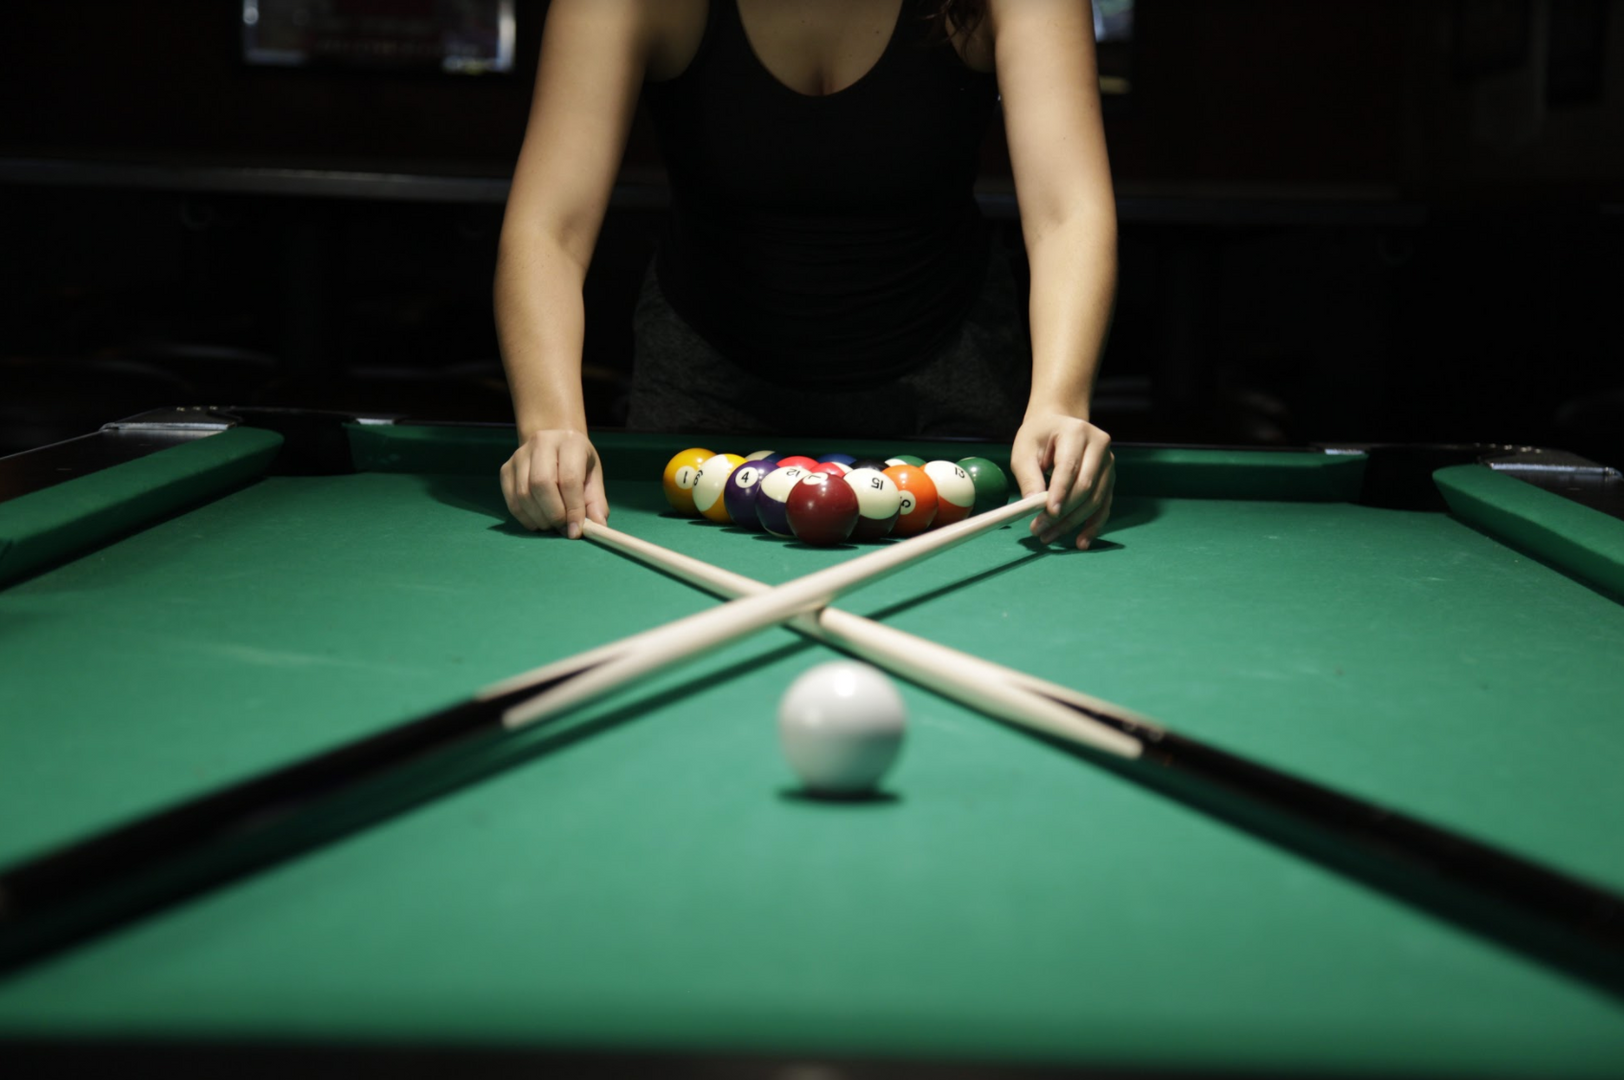 Setting up pool table